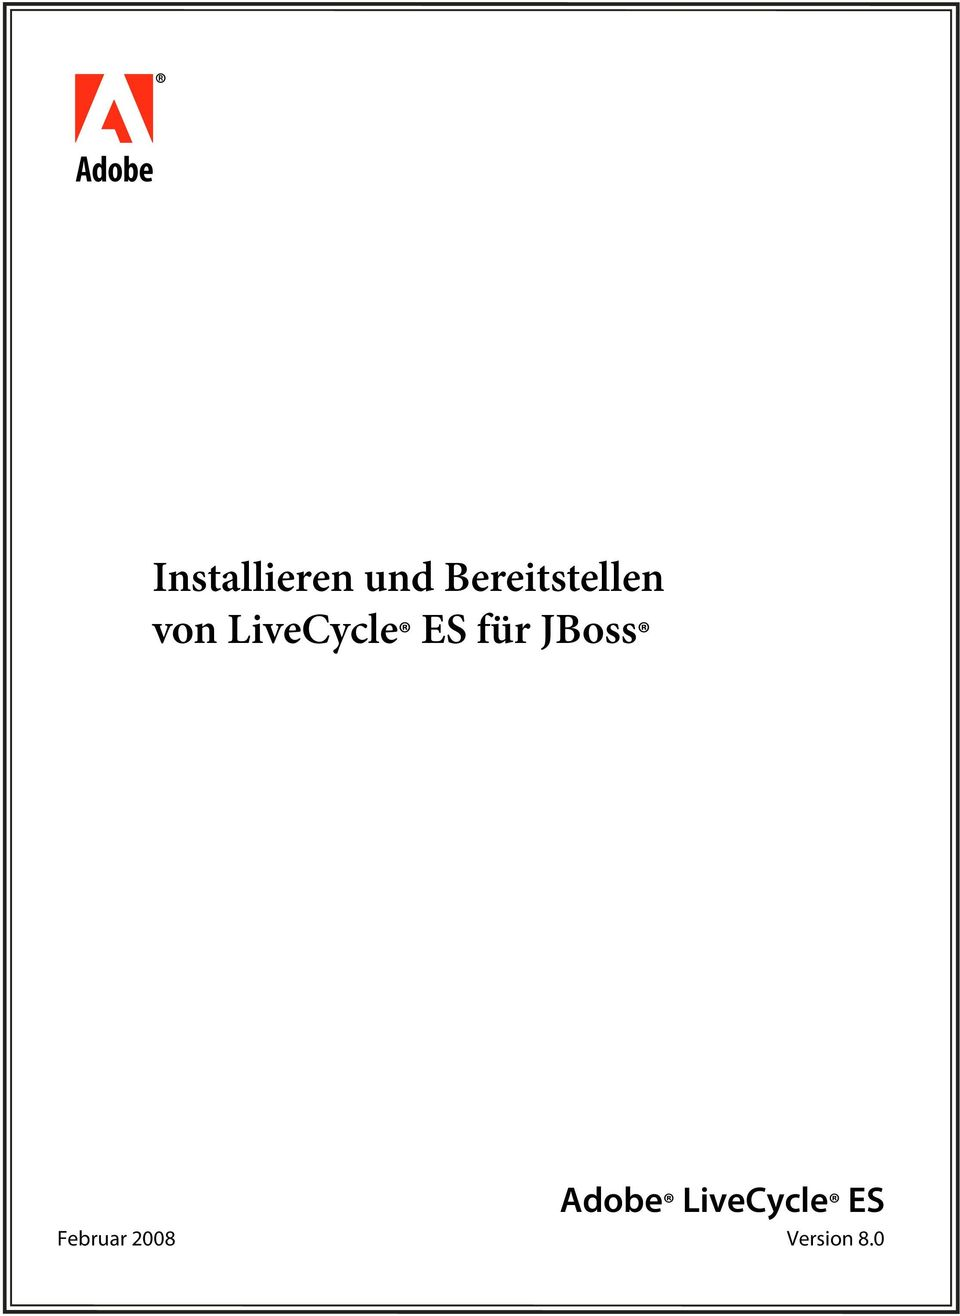 LiveCycle ES für JBoss